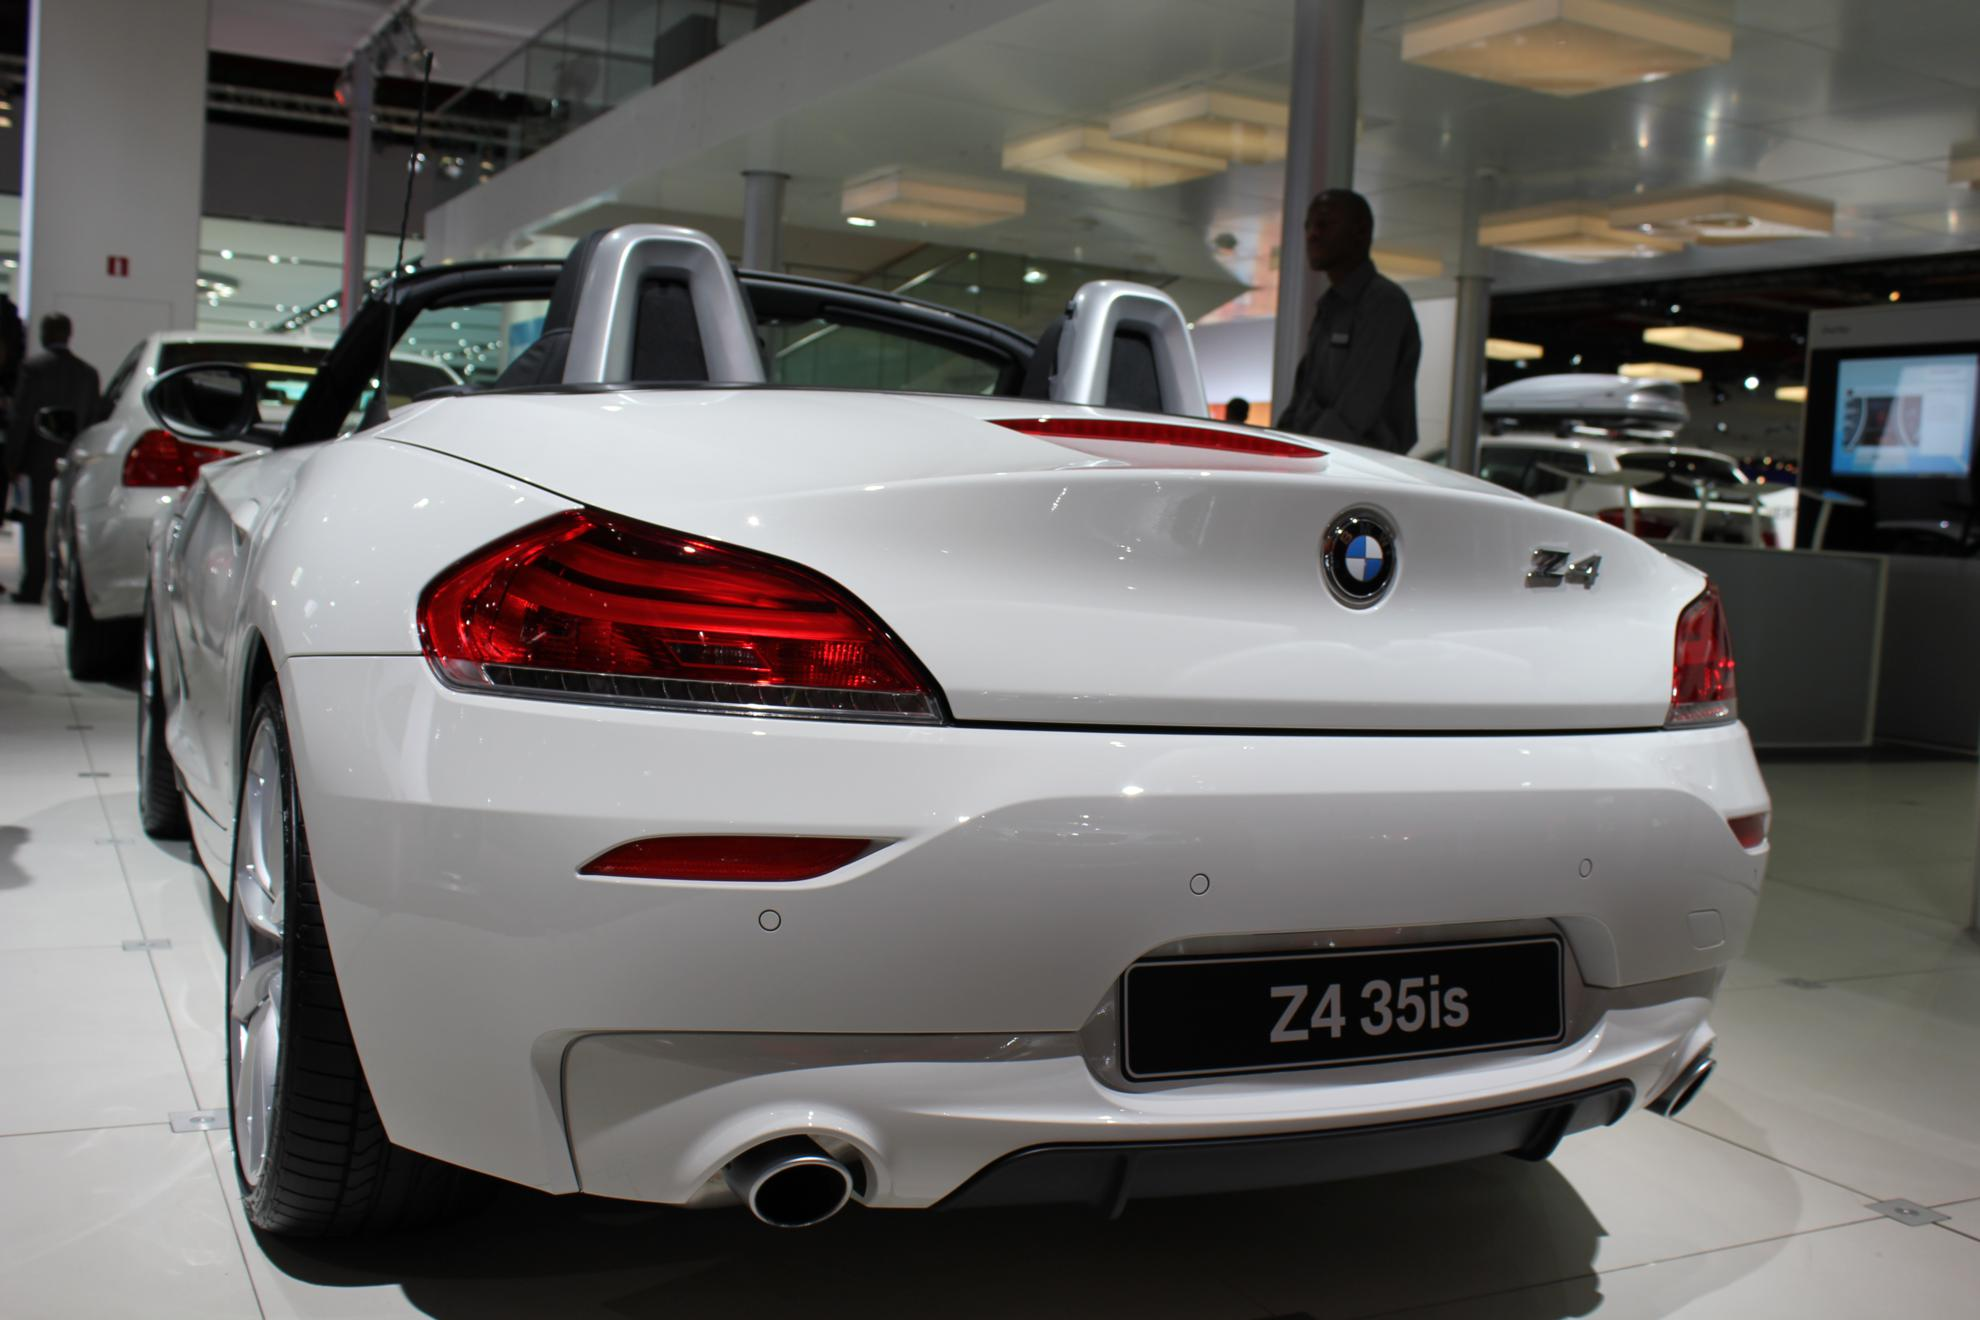 Bmw Z4 35is Johannesburg Motor Show 2011 3d Car Shows